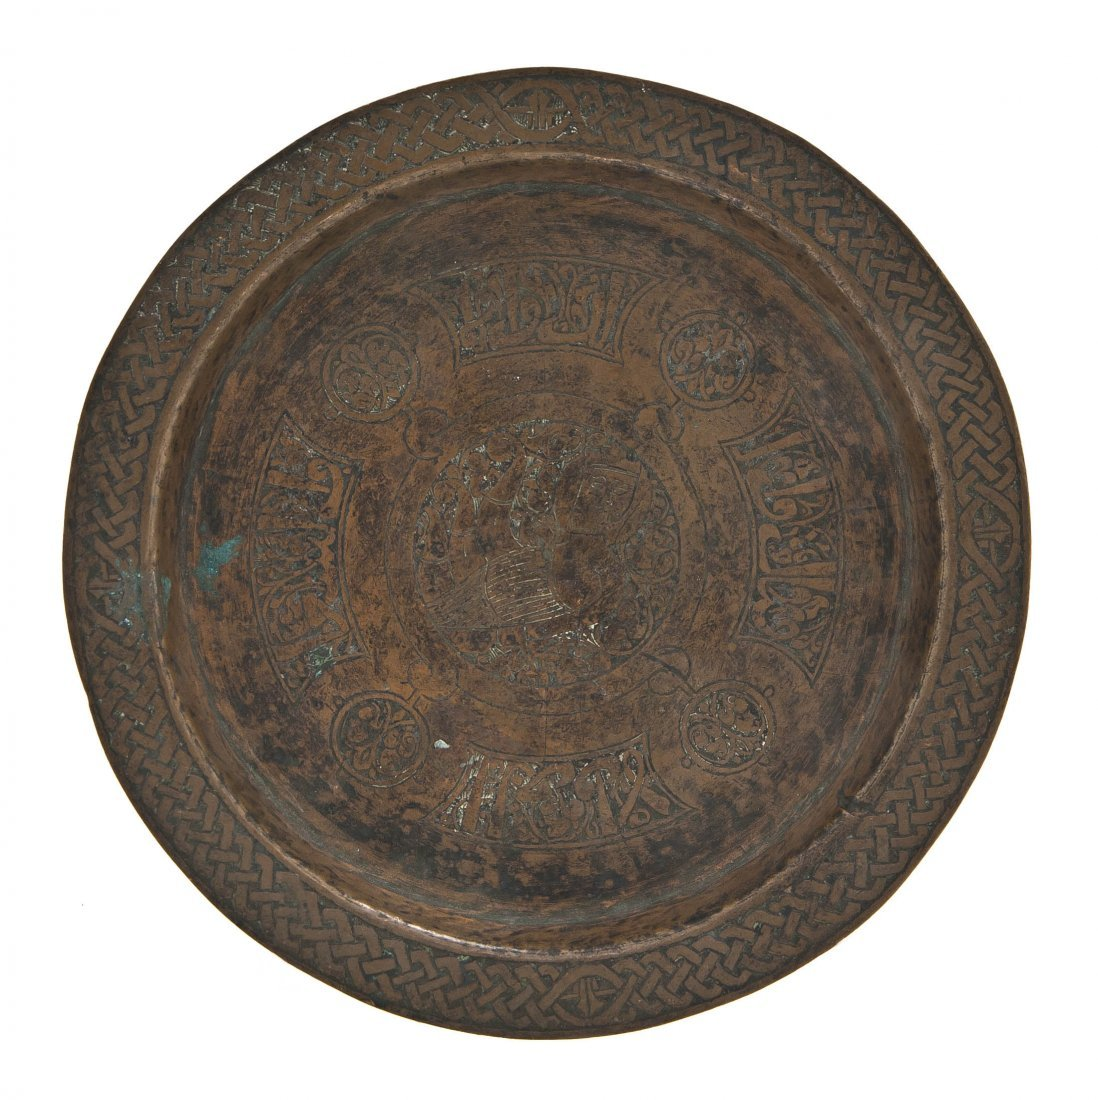 1079: A Middle Eastern Bronze Dish, Diameter 6 5/8 inch